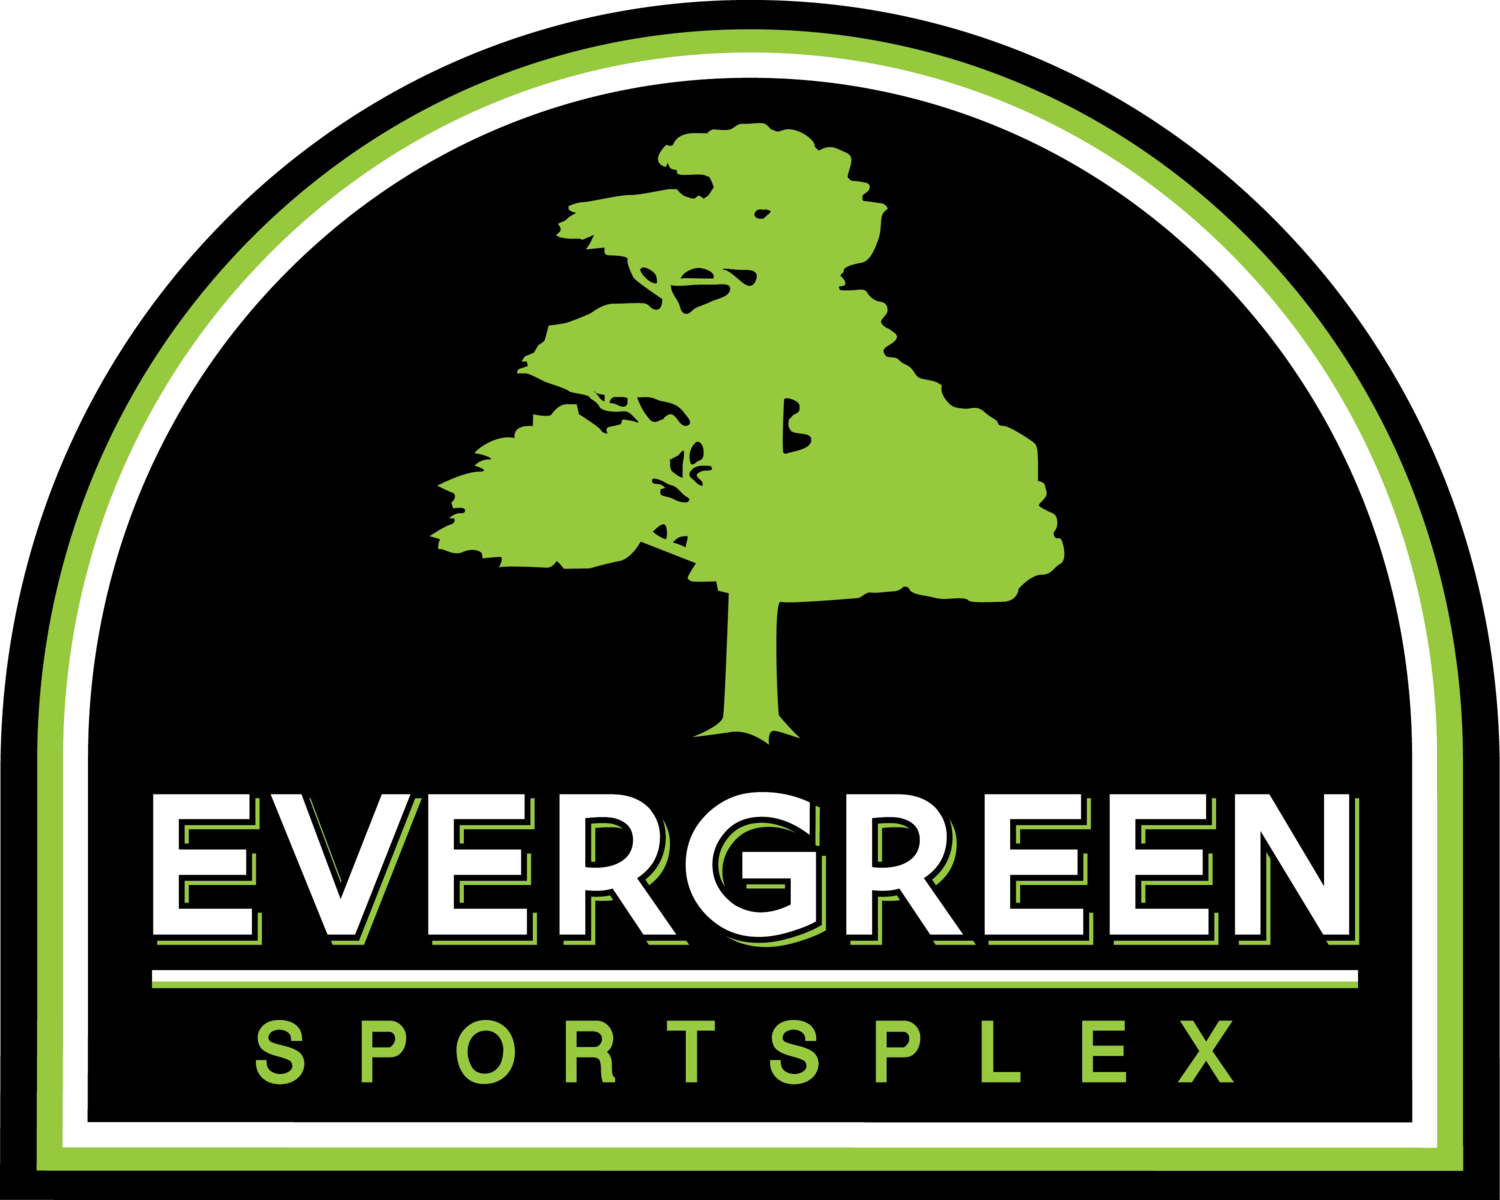 _EVERGREEN+PRIMARY_outlines+for+print.png